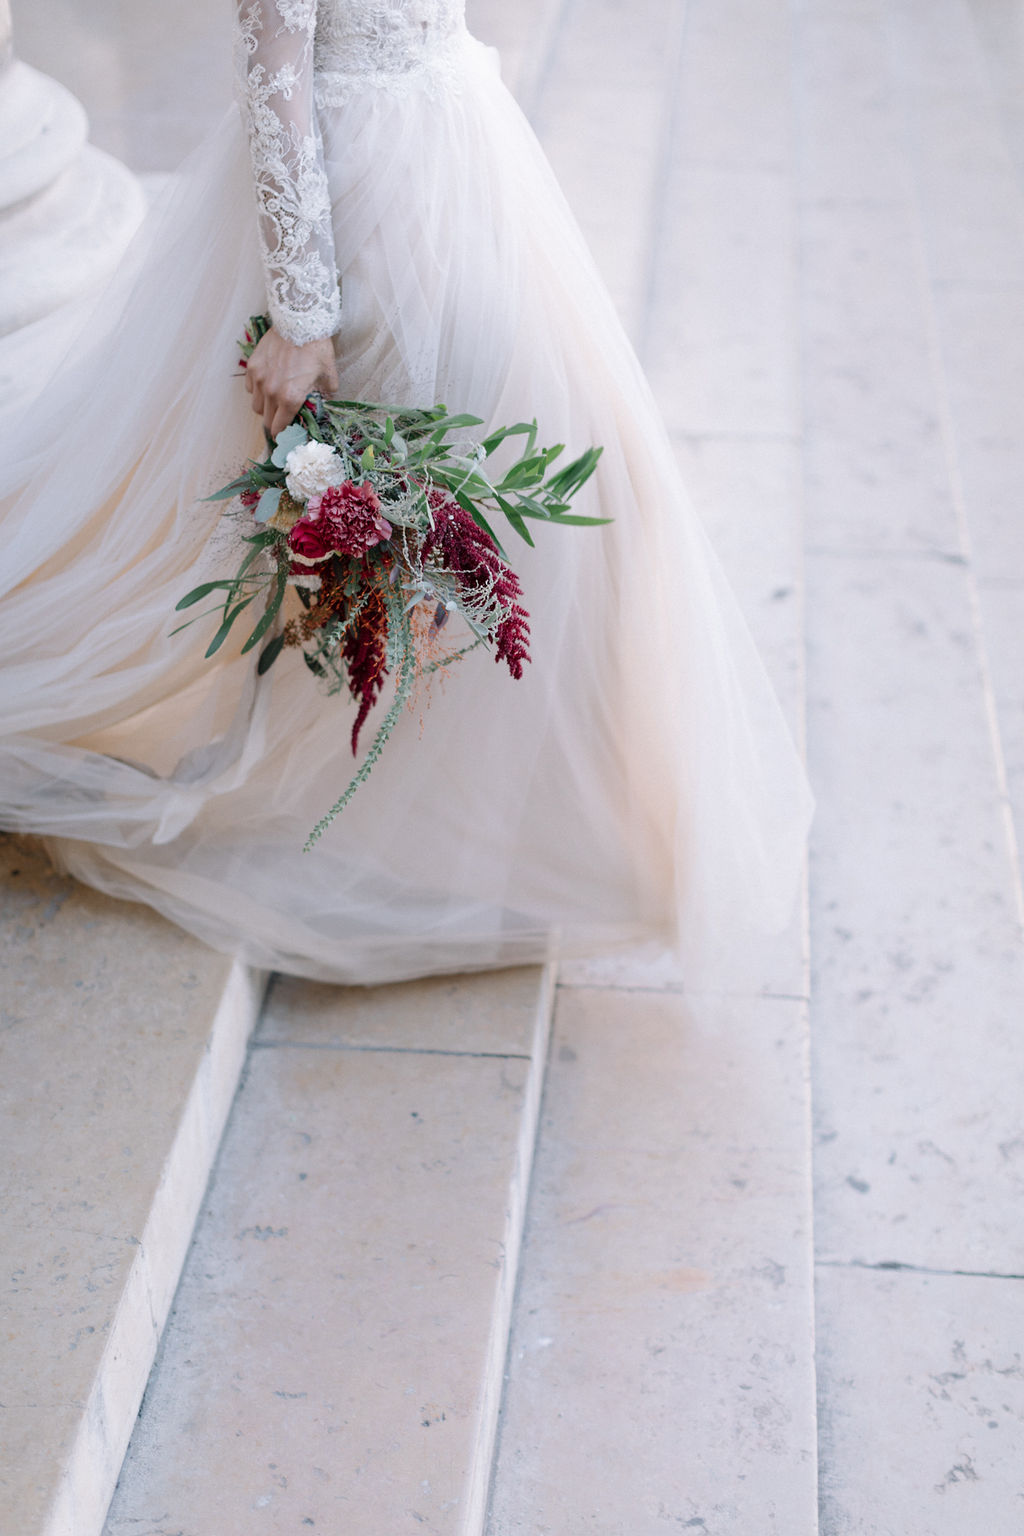 sublime bouquet tenue à la main de la mariée qui descend les marches dans paris